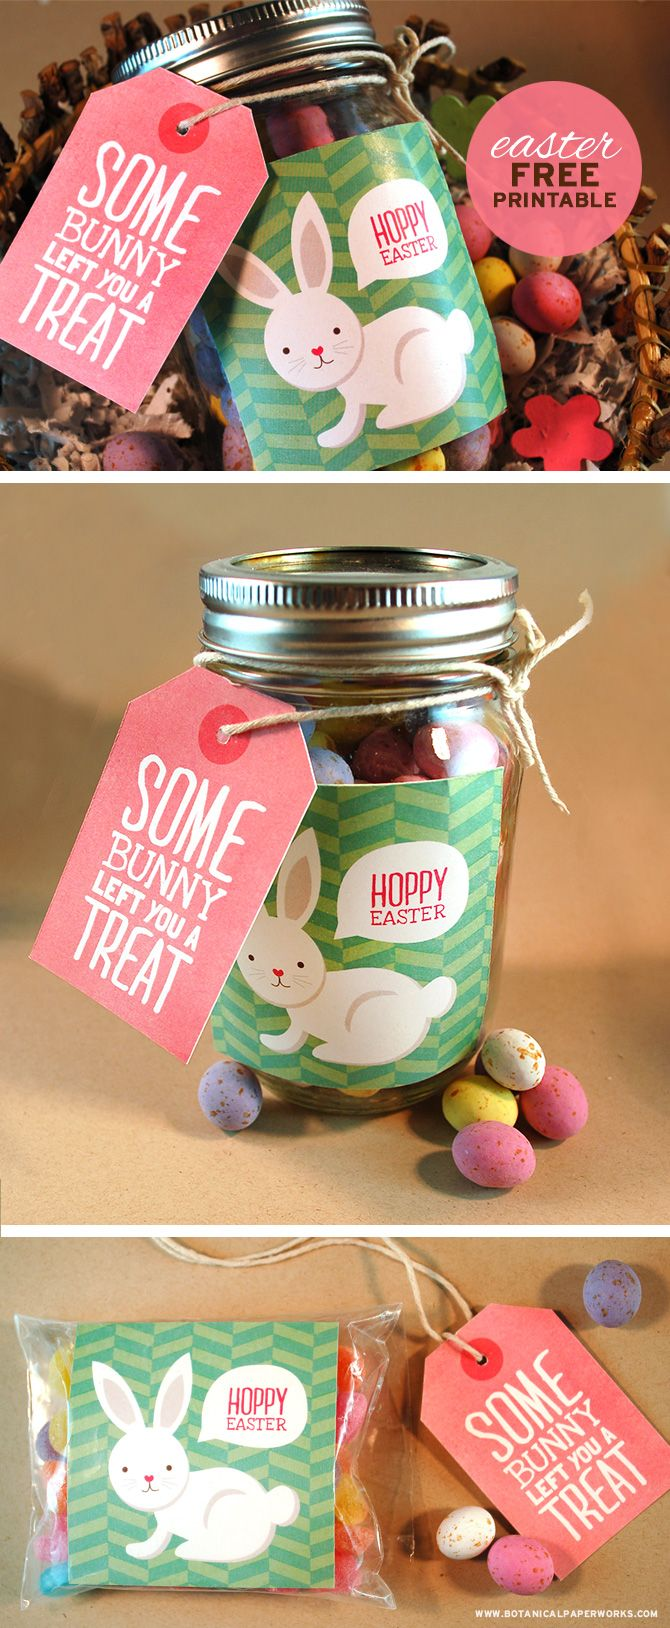 451 best craft pscoa images on pinterest easter crafts easter free printable easter treat tags labels diy easter gifts for negle Gallery